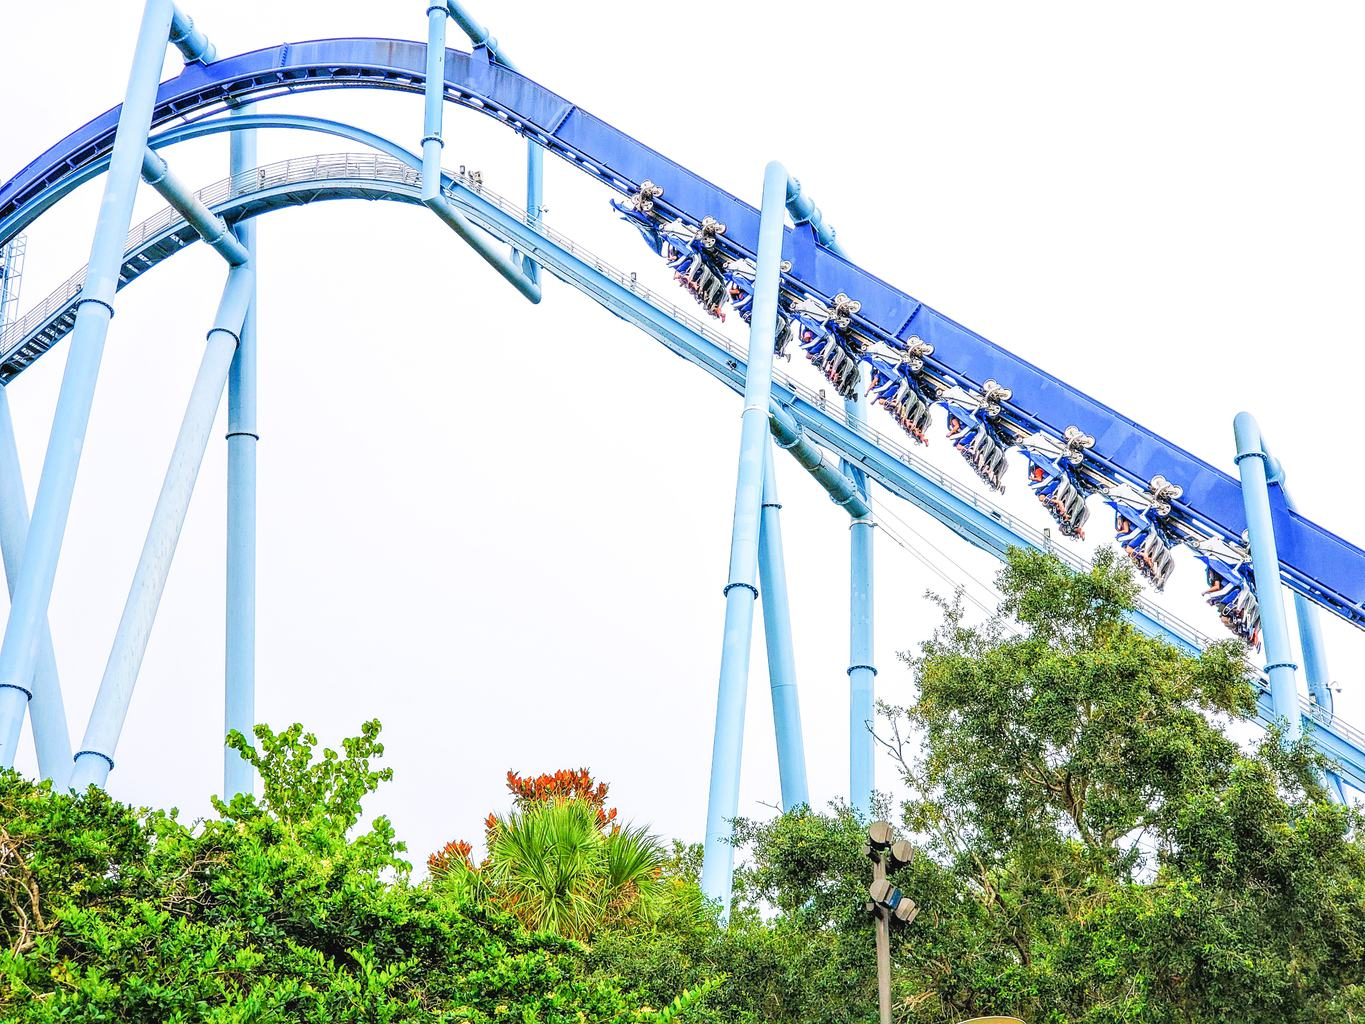 manta flying roller coaster at sea world in Orlando